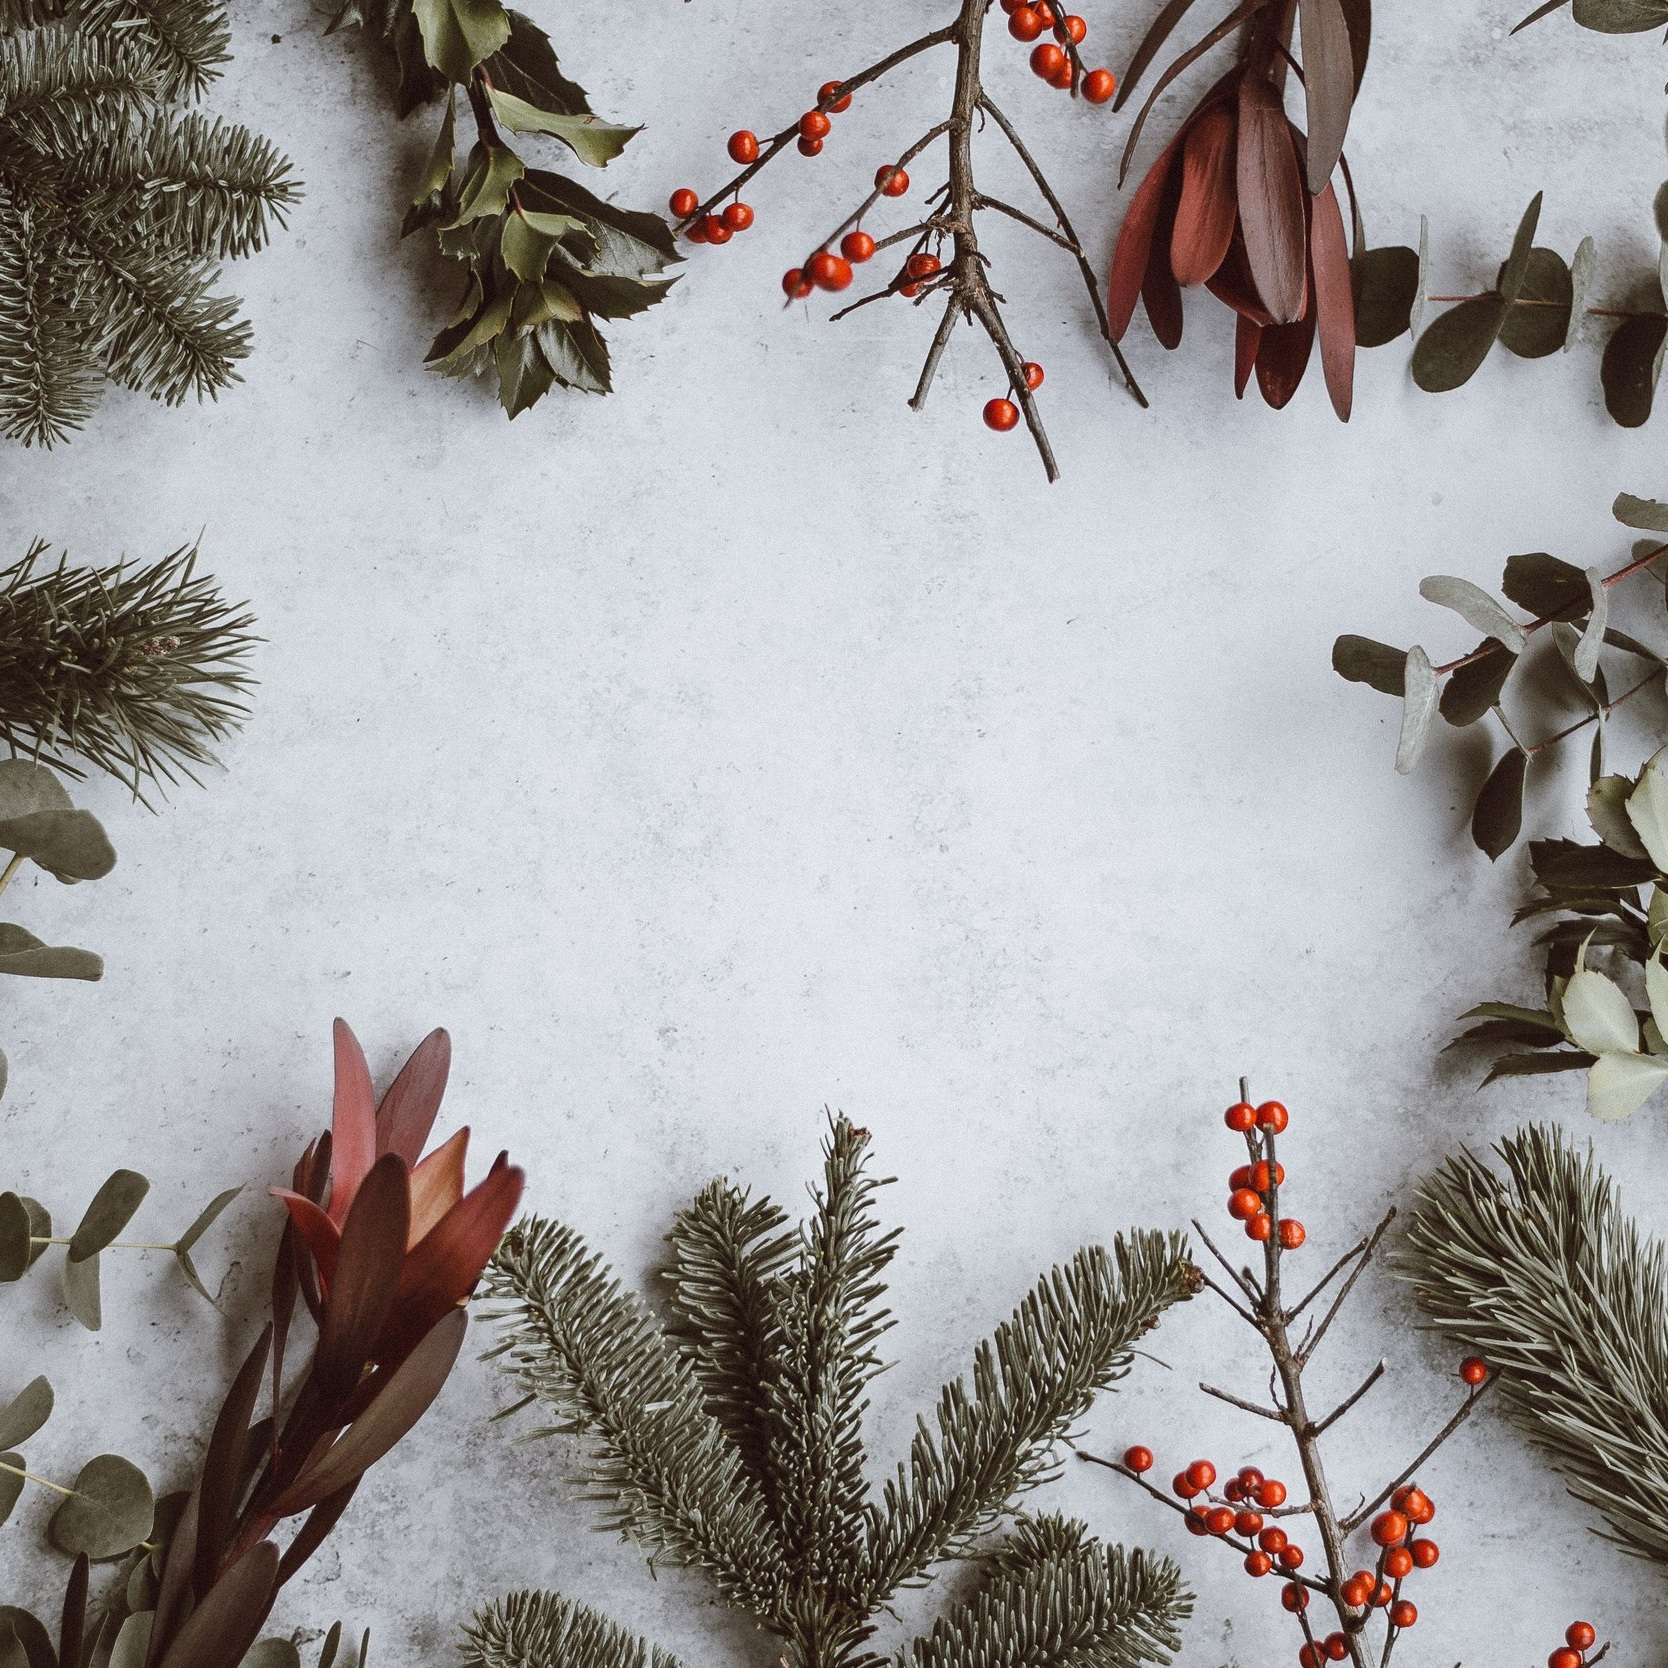 SUSTAINABLE CHRISTMAS   The festive season creates 30% more waste than any other time of year. This deck looks at ways we can enjoy Christmas classics with a sustainable twist.   DOWNLOAD